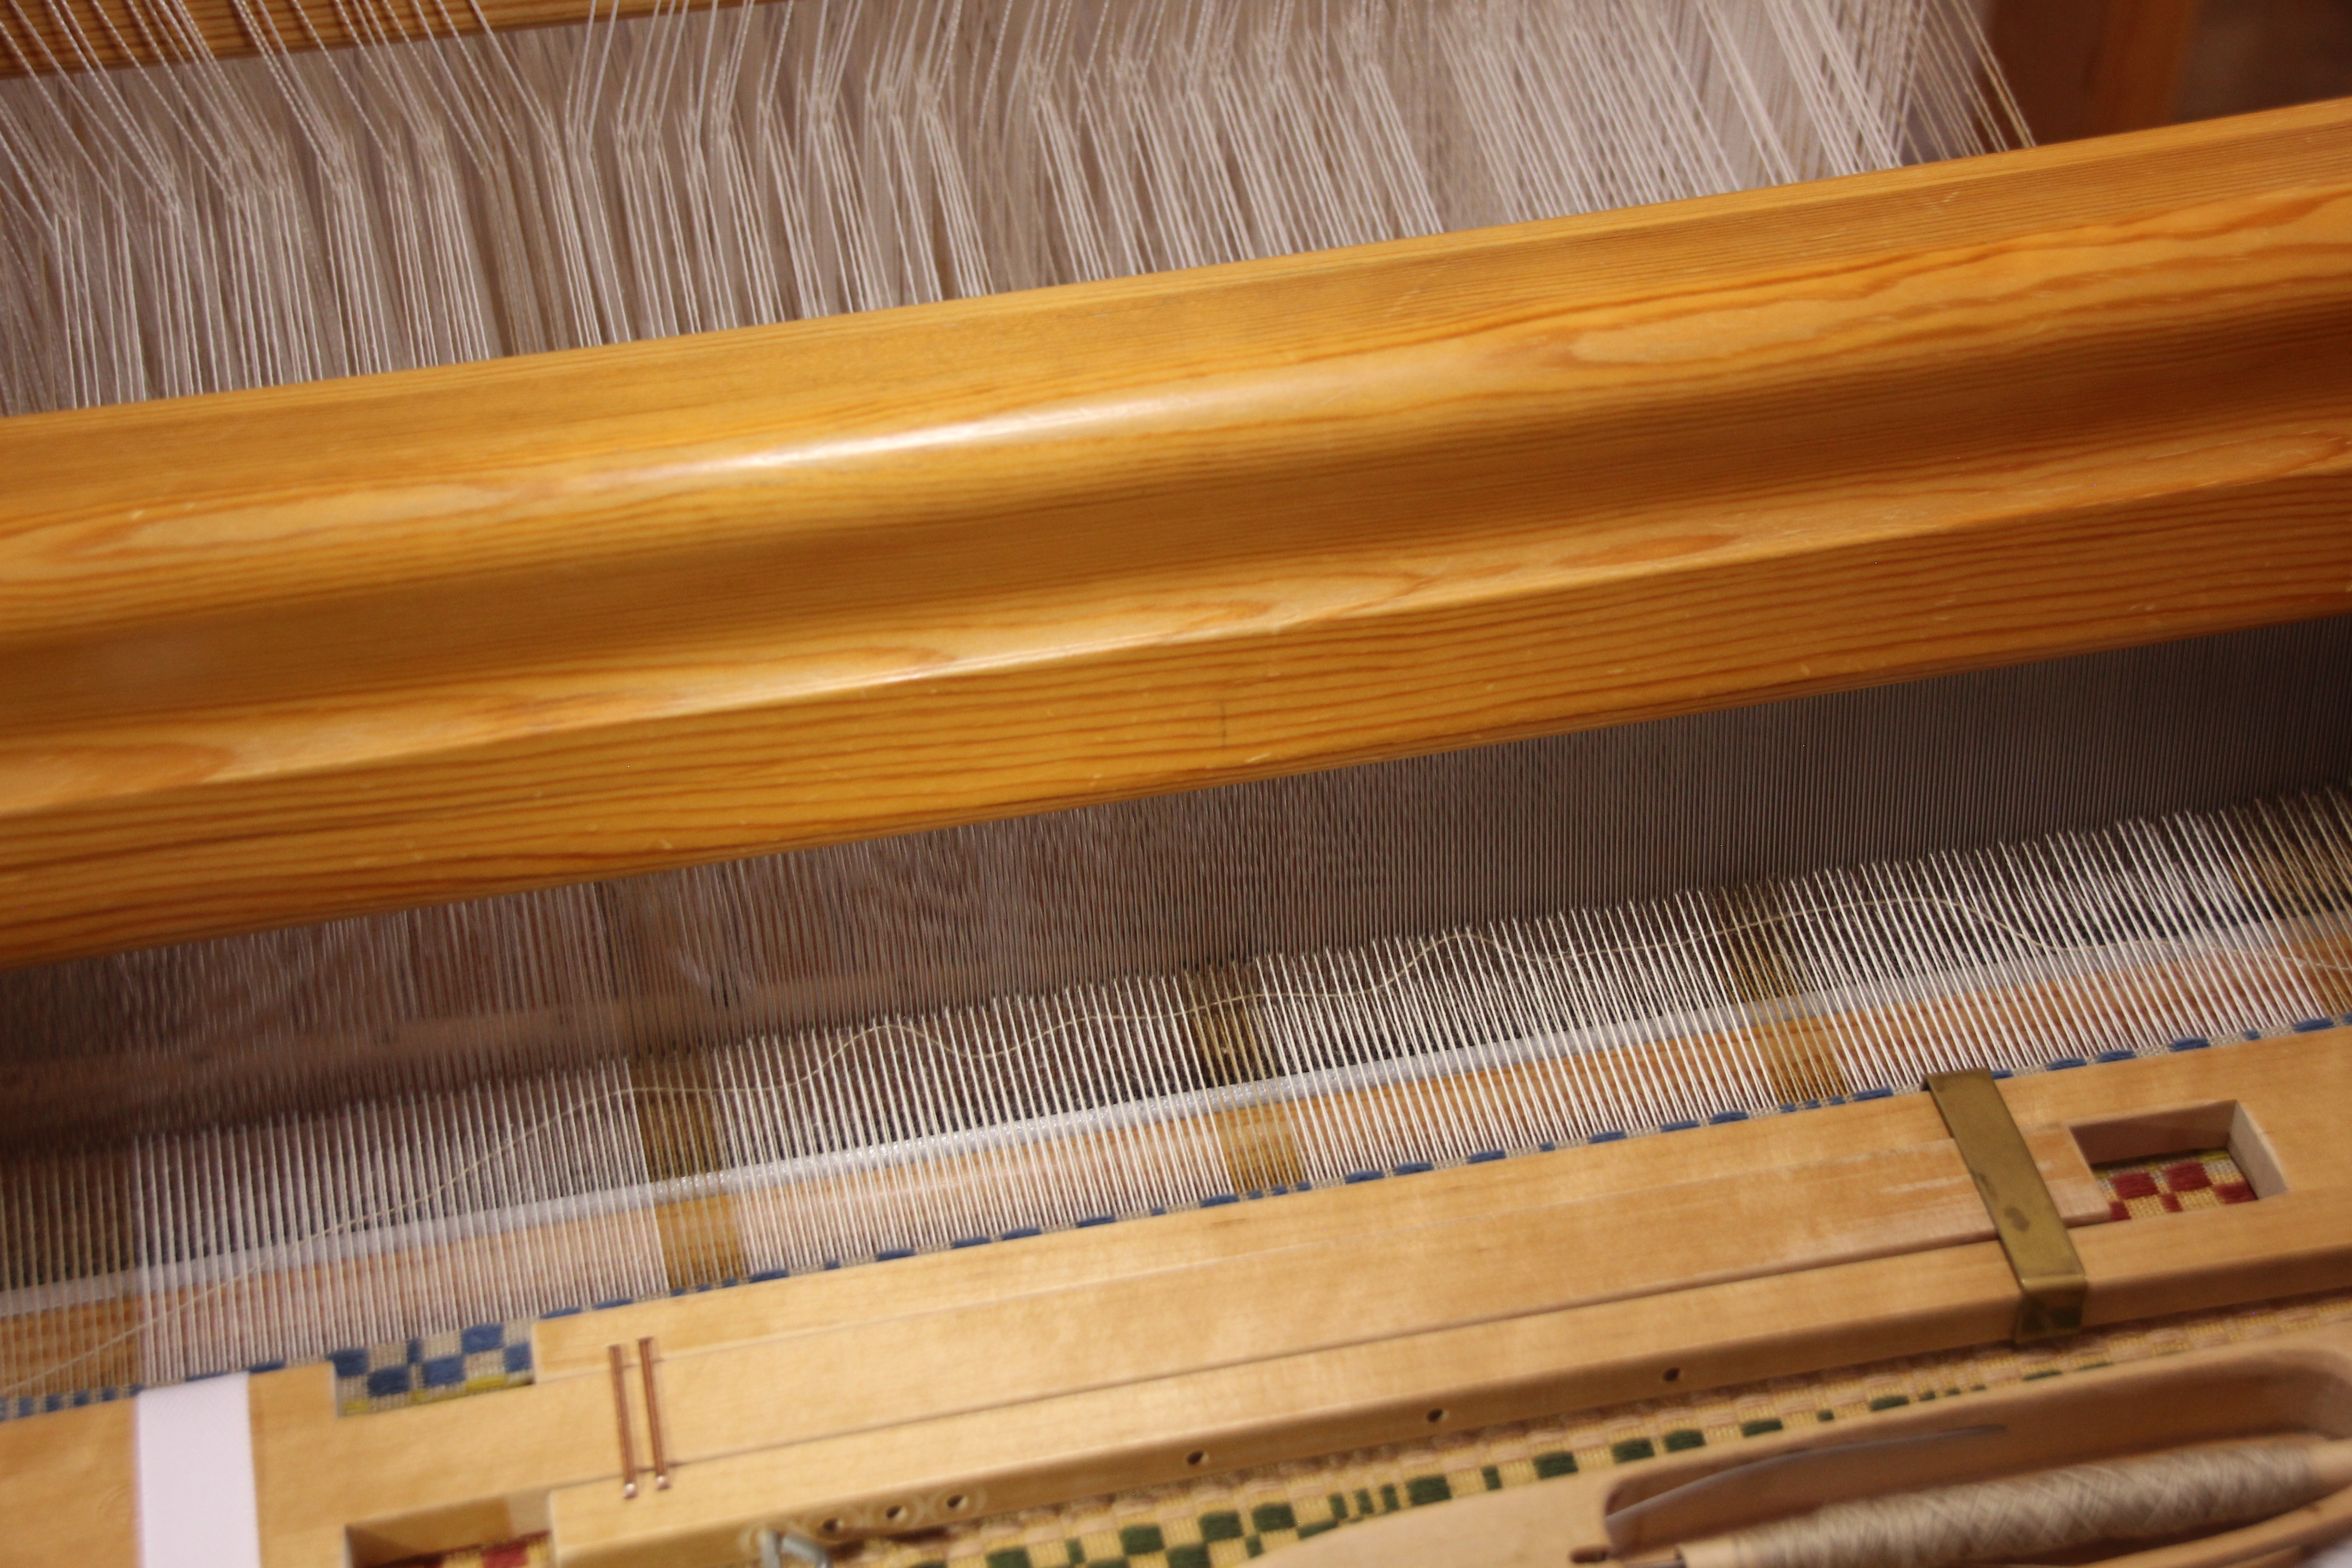 Weft rep using the beater to make wavy line.